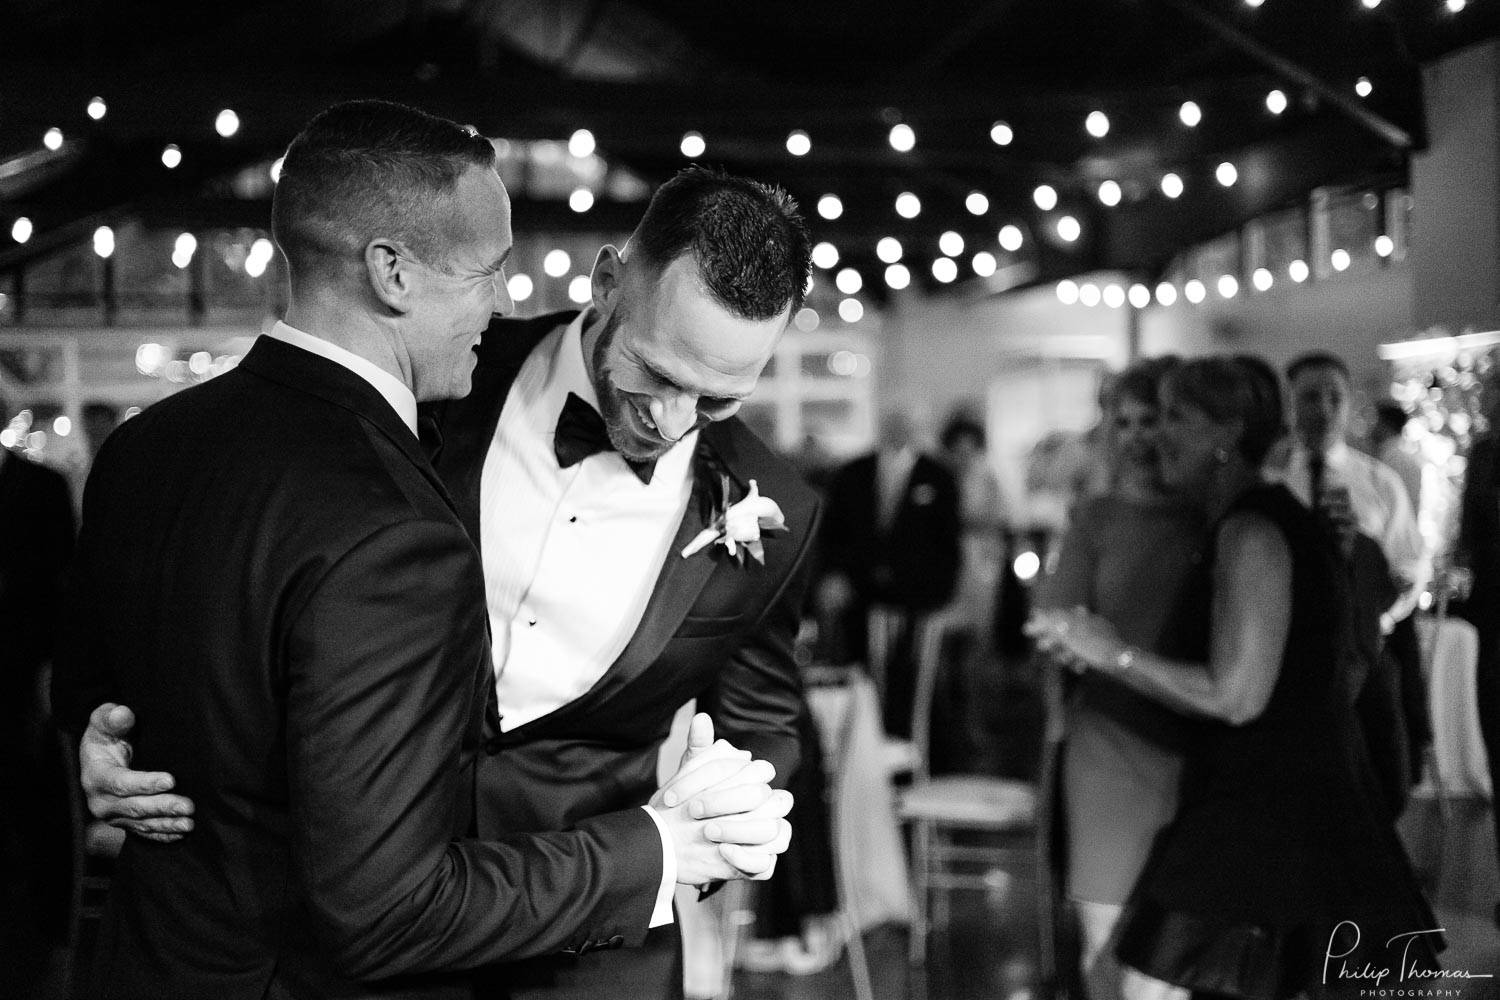 Wedding Scene with two men in forefront